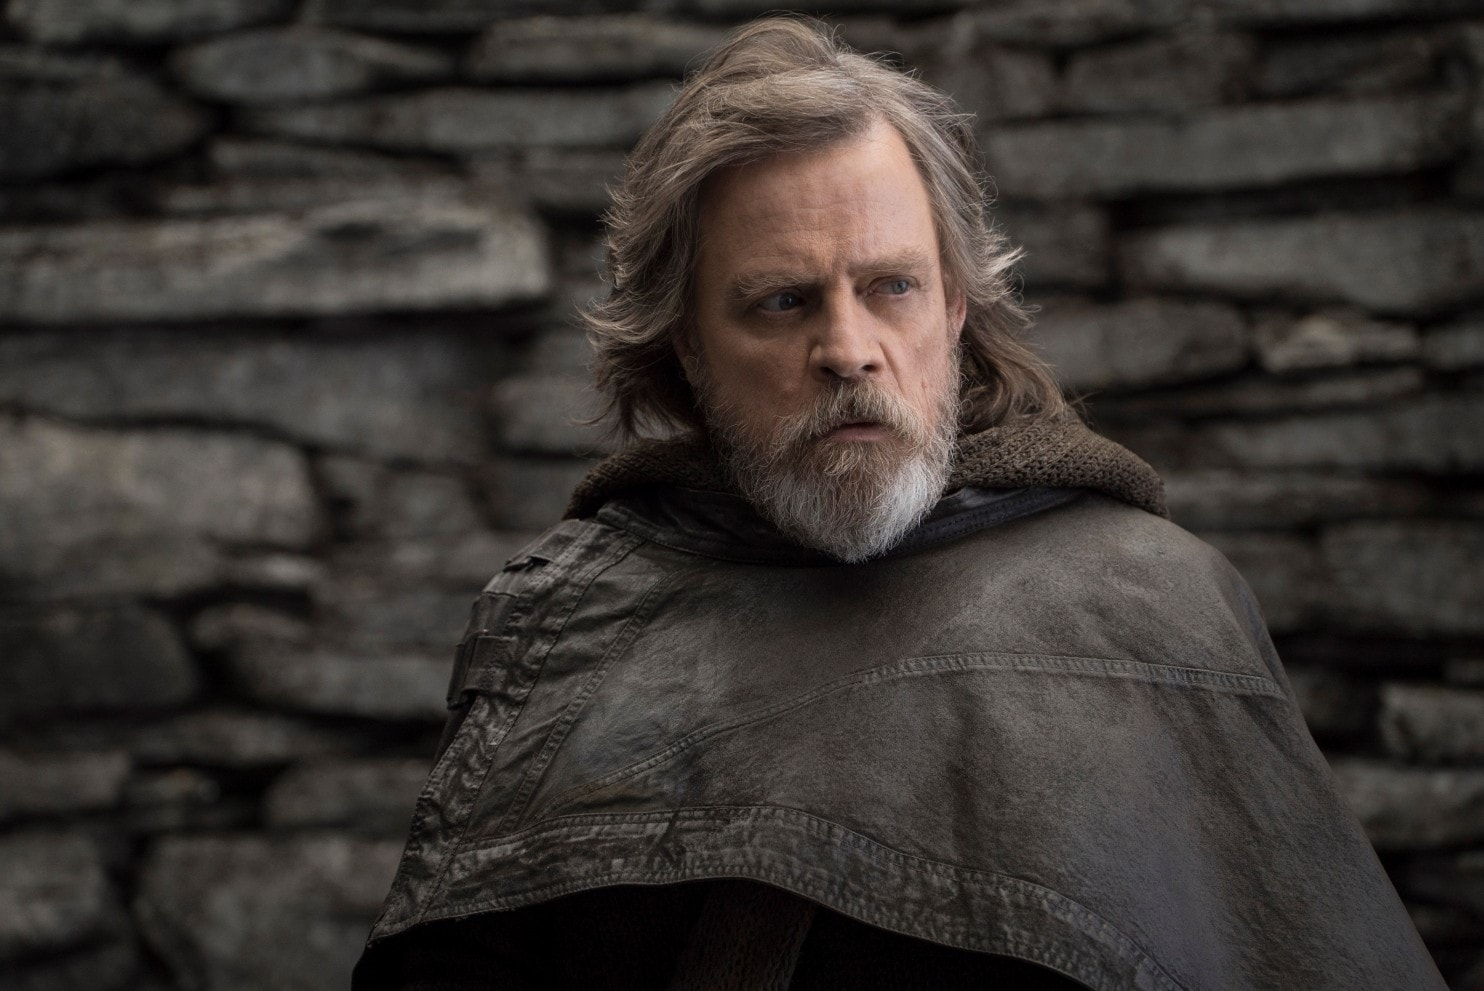 aljihawia24 - 'Star Wars: The Last Jedi' honors the franchise with affection and humor